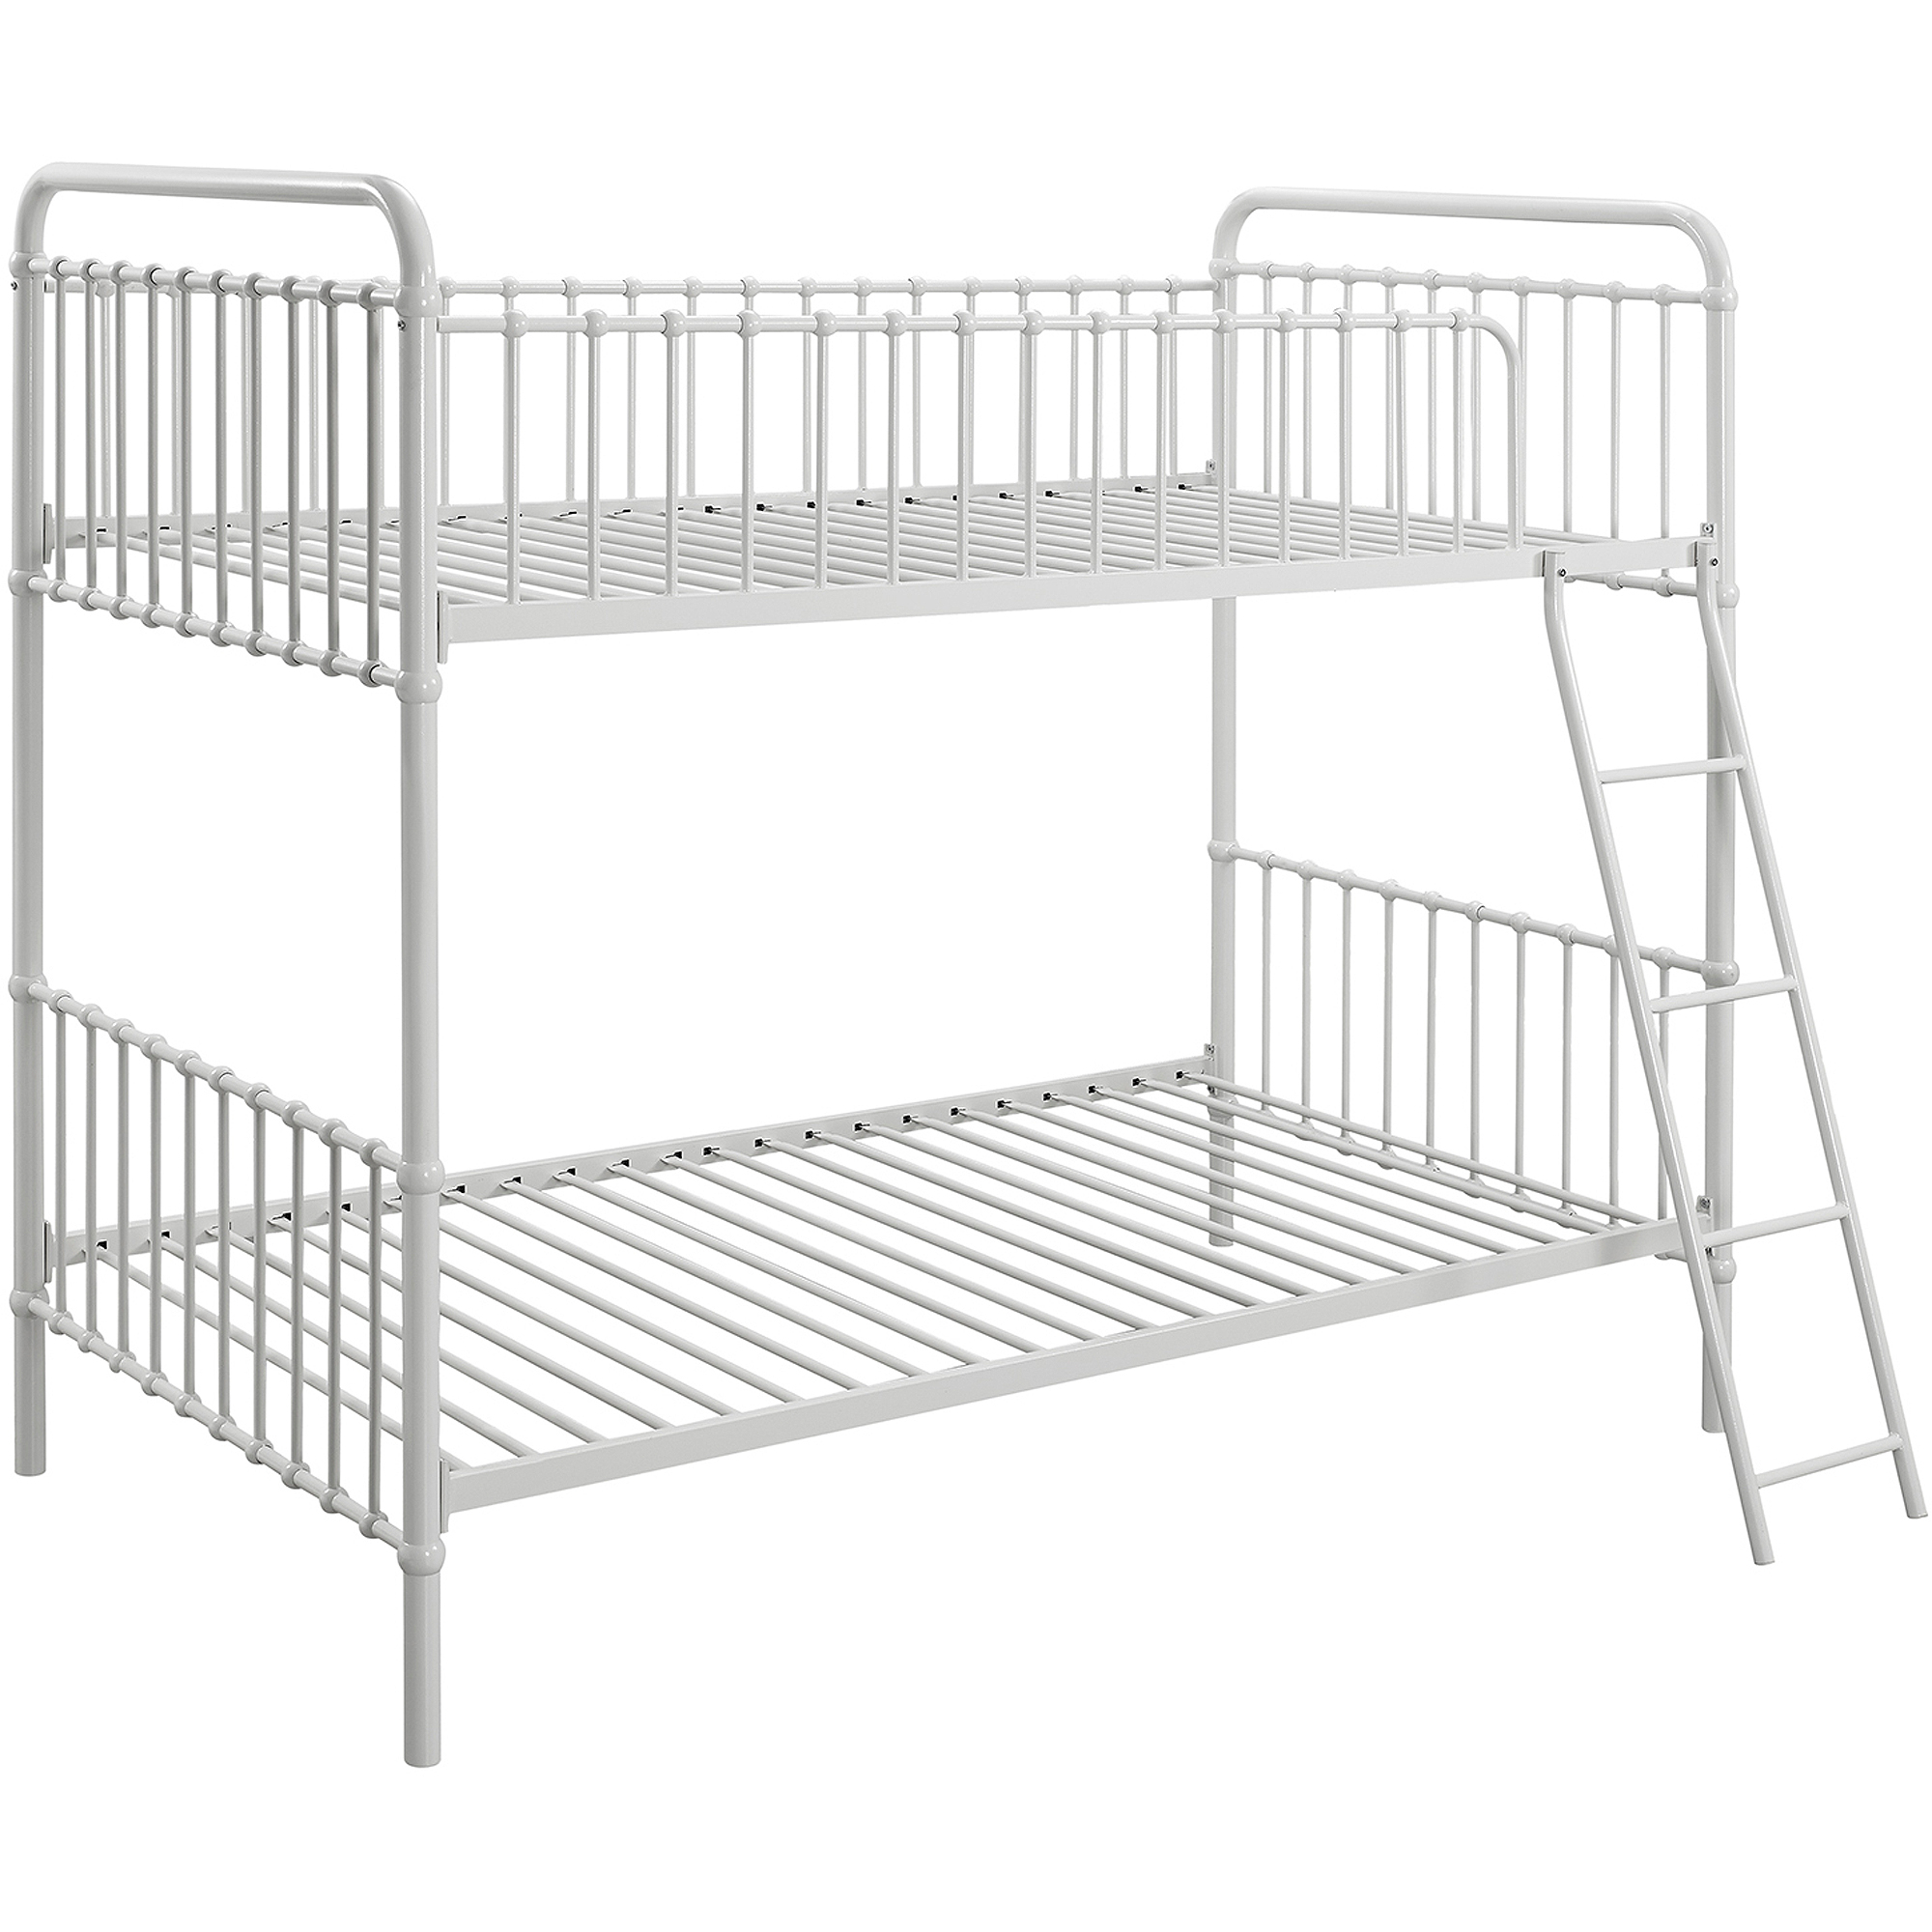 148 Metal Twin Bunk Bed Frame